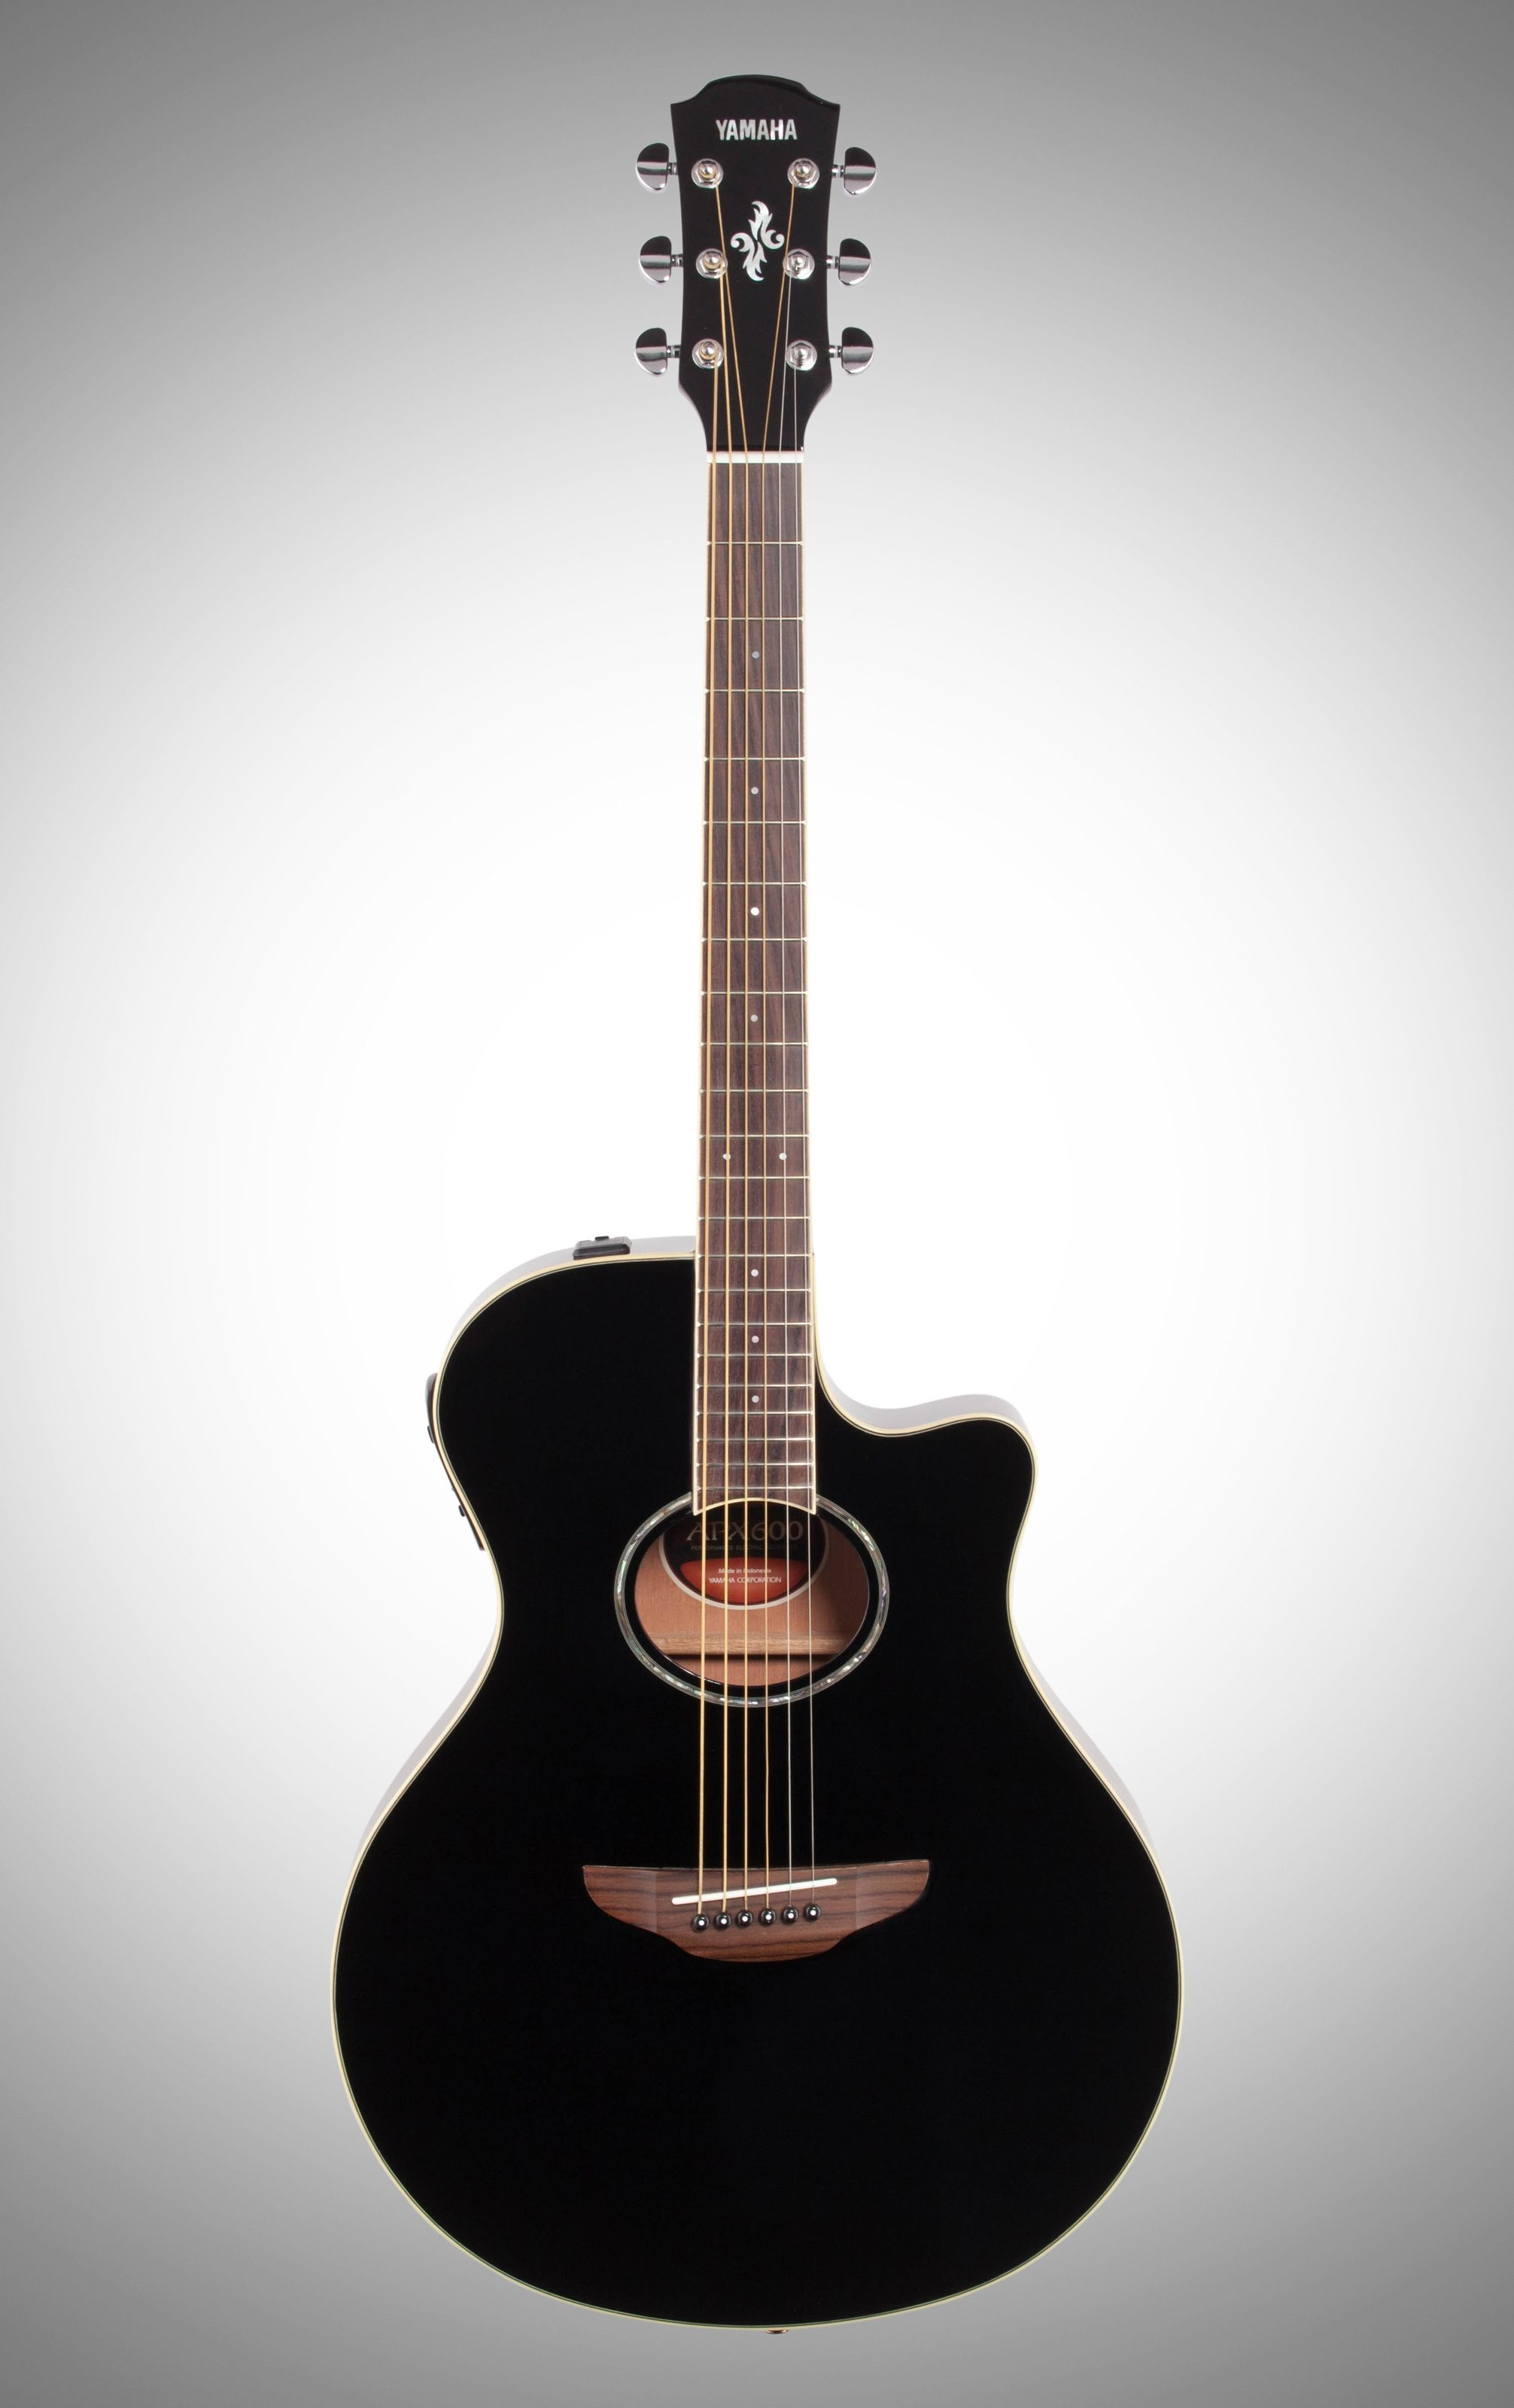 Acoustic Yamaha Yamaha Apx 600 Acoustic Electric Guitar Black